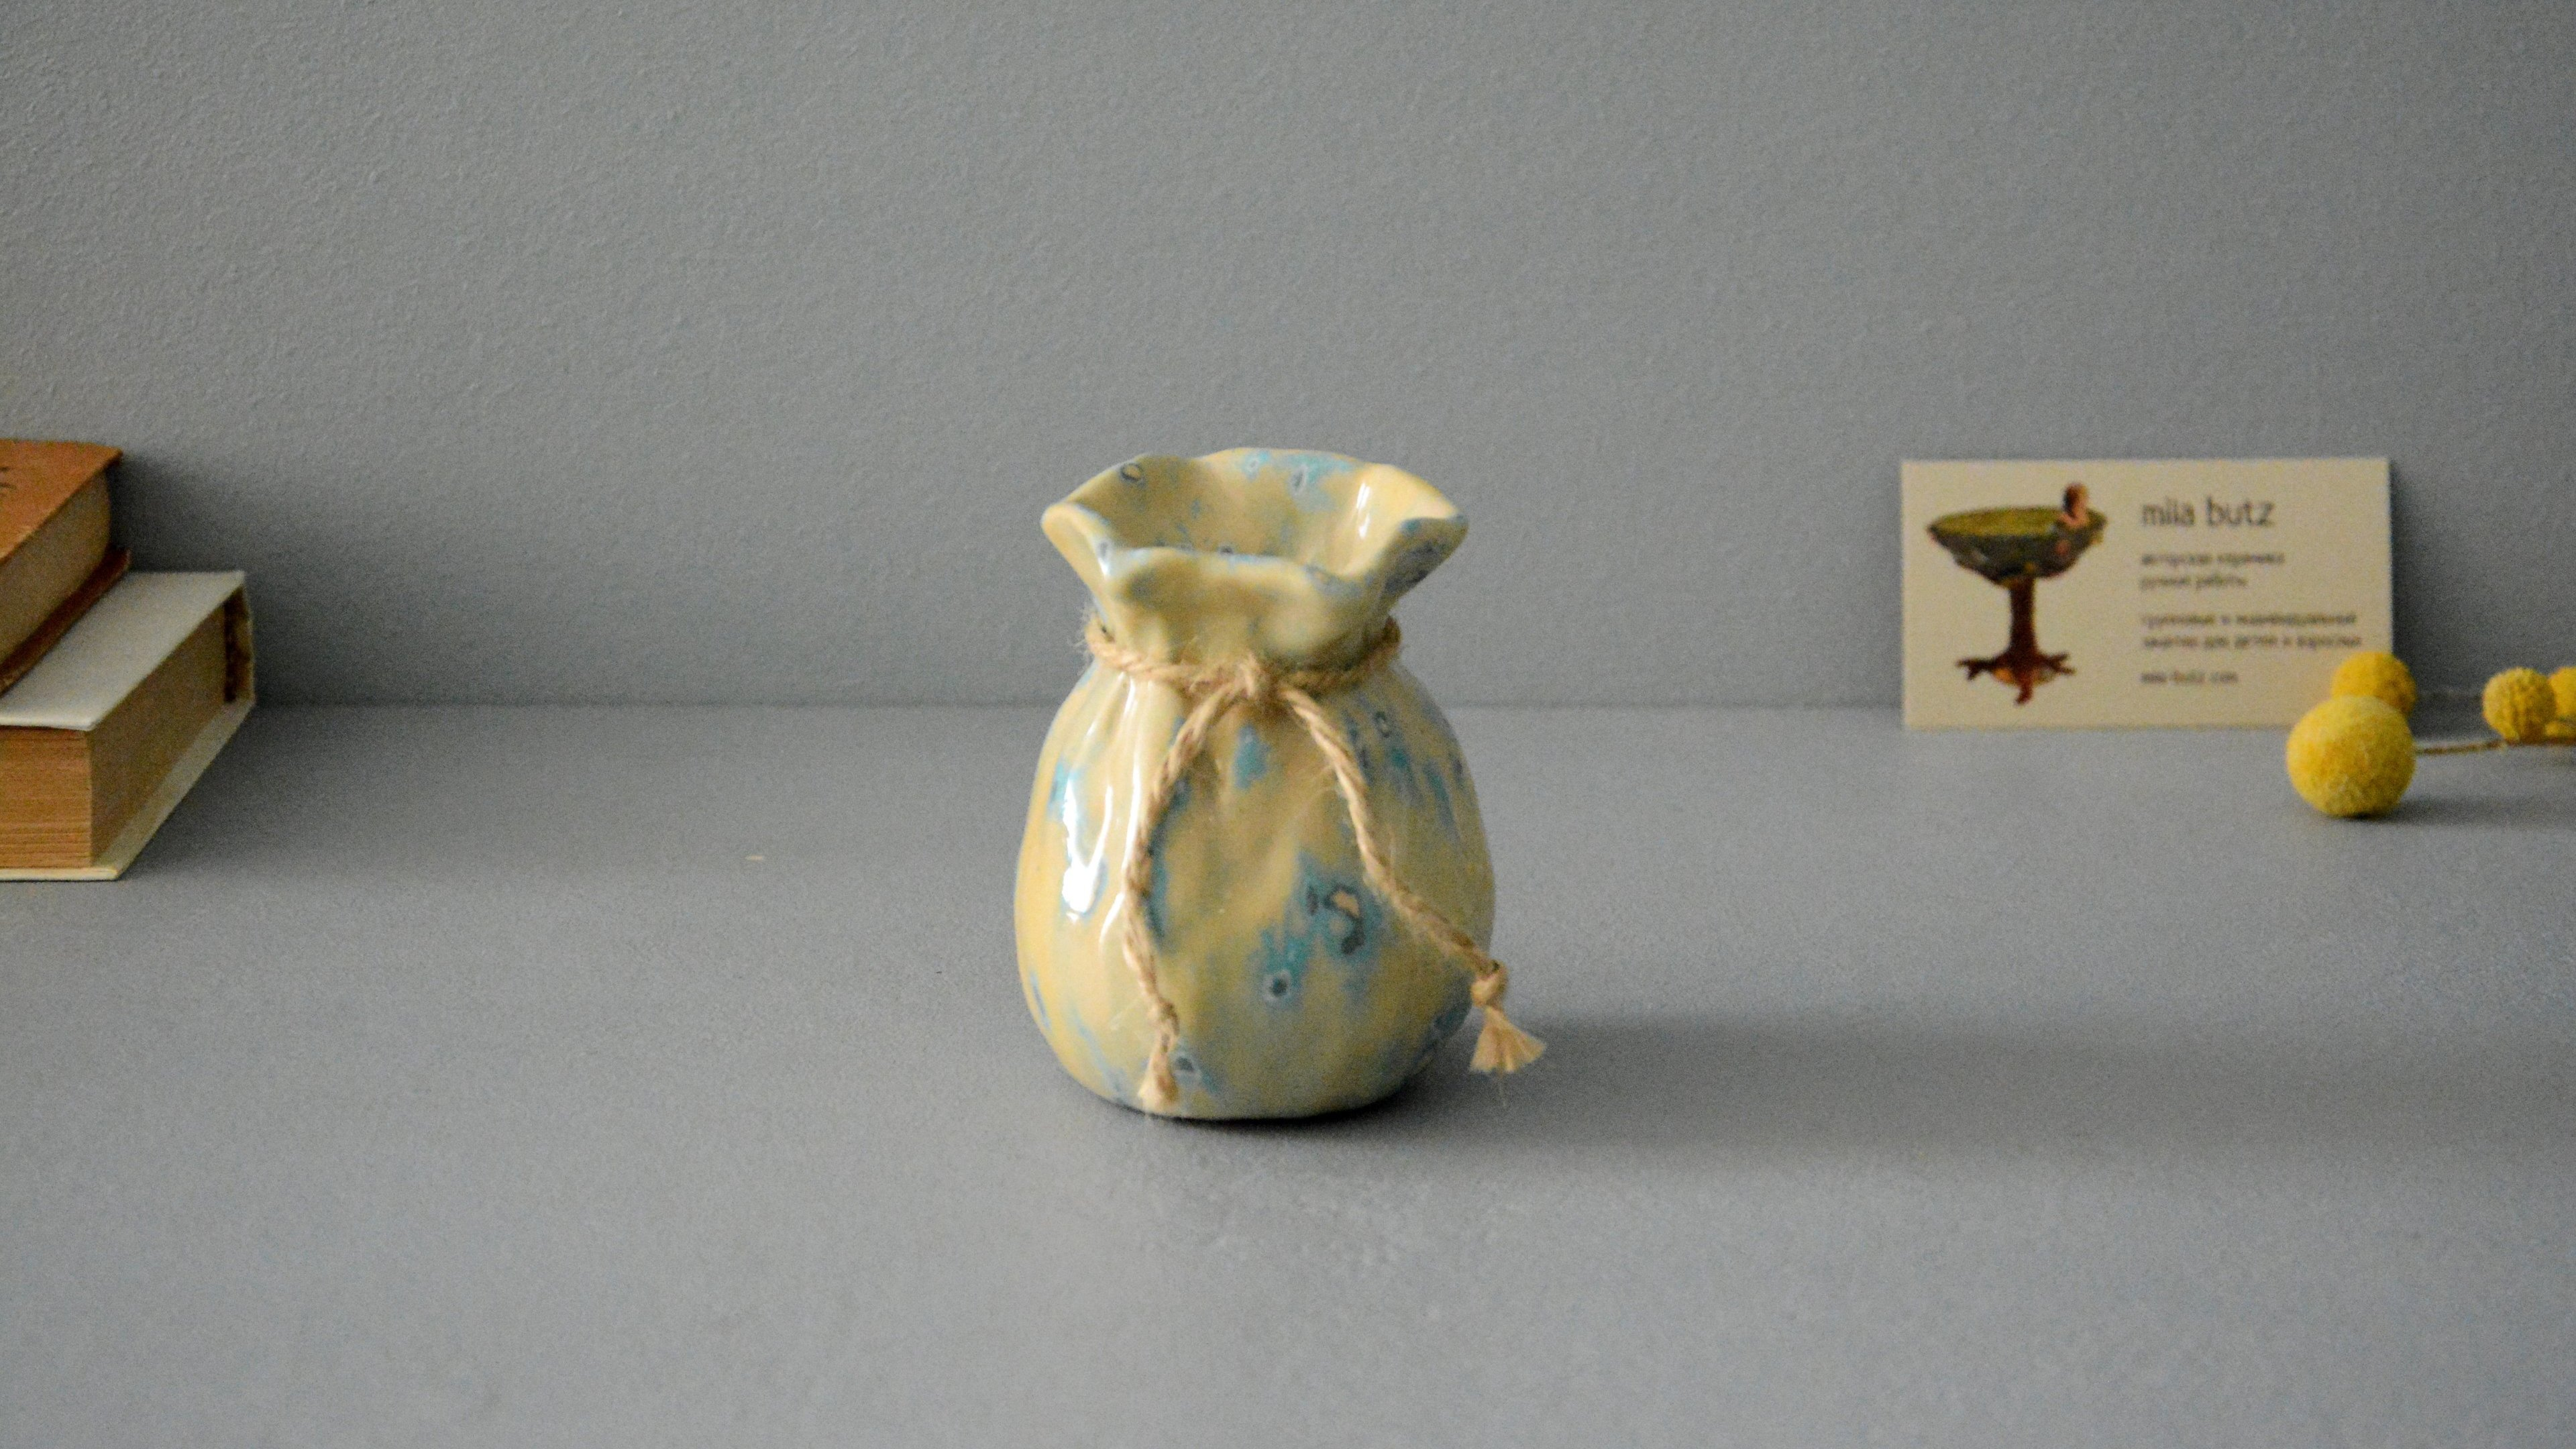 Candle vase «Beige Bagful», height - 9 cm, color - beige. Photo 1407-3840-2160.